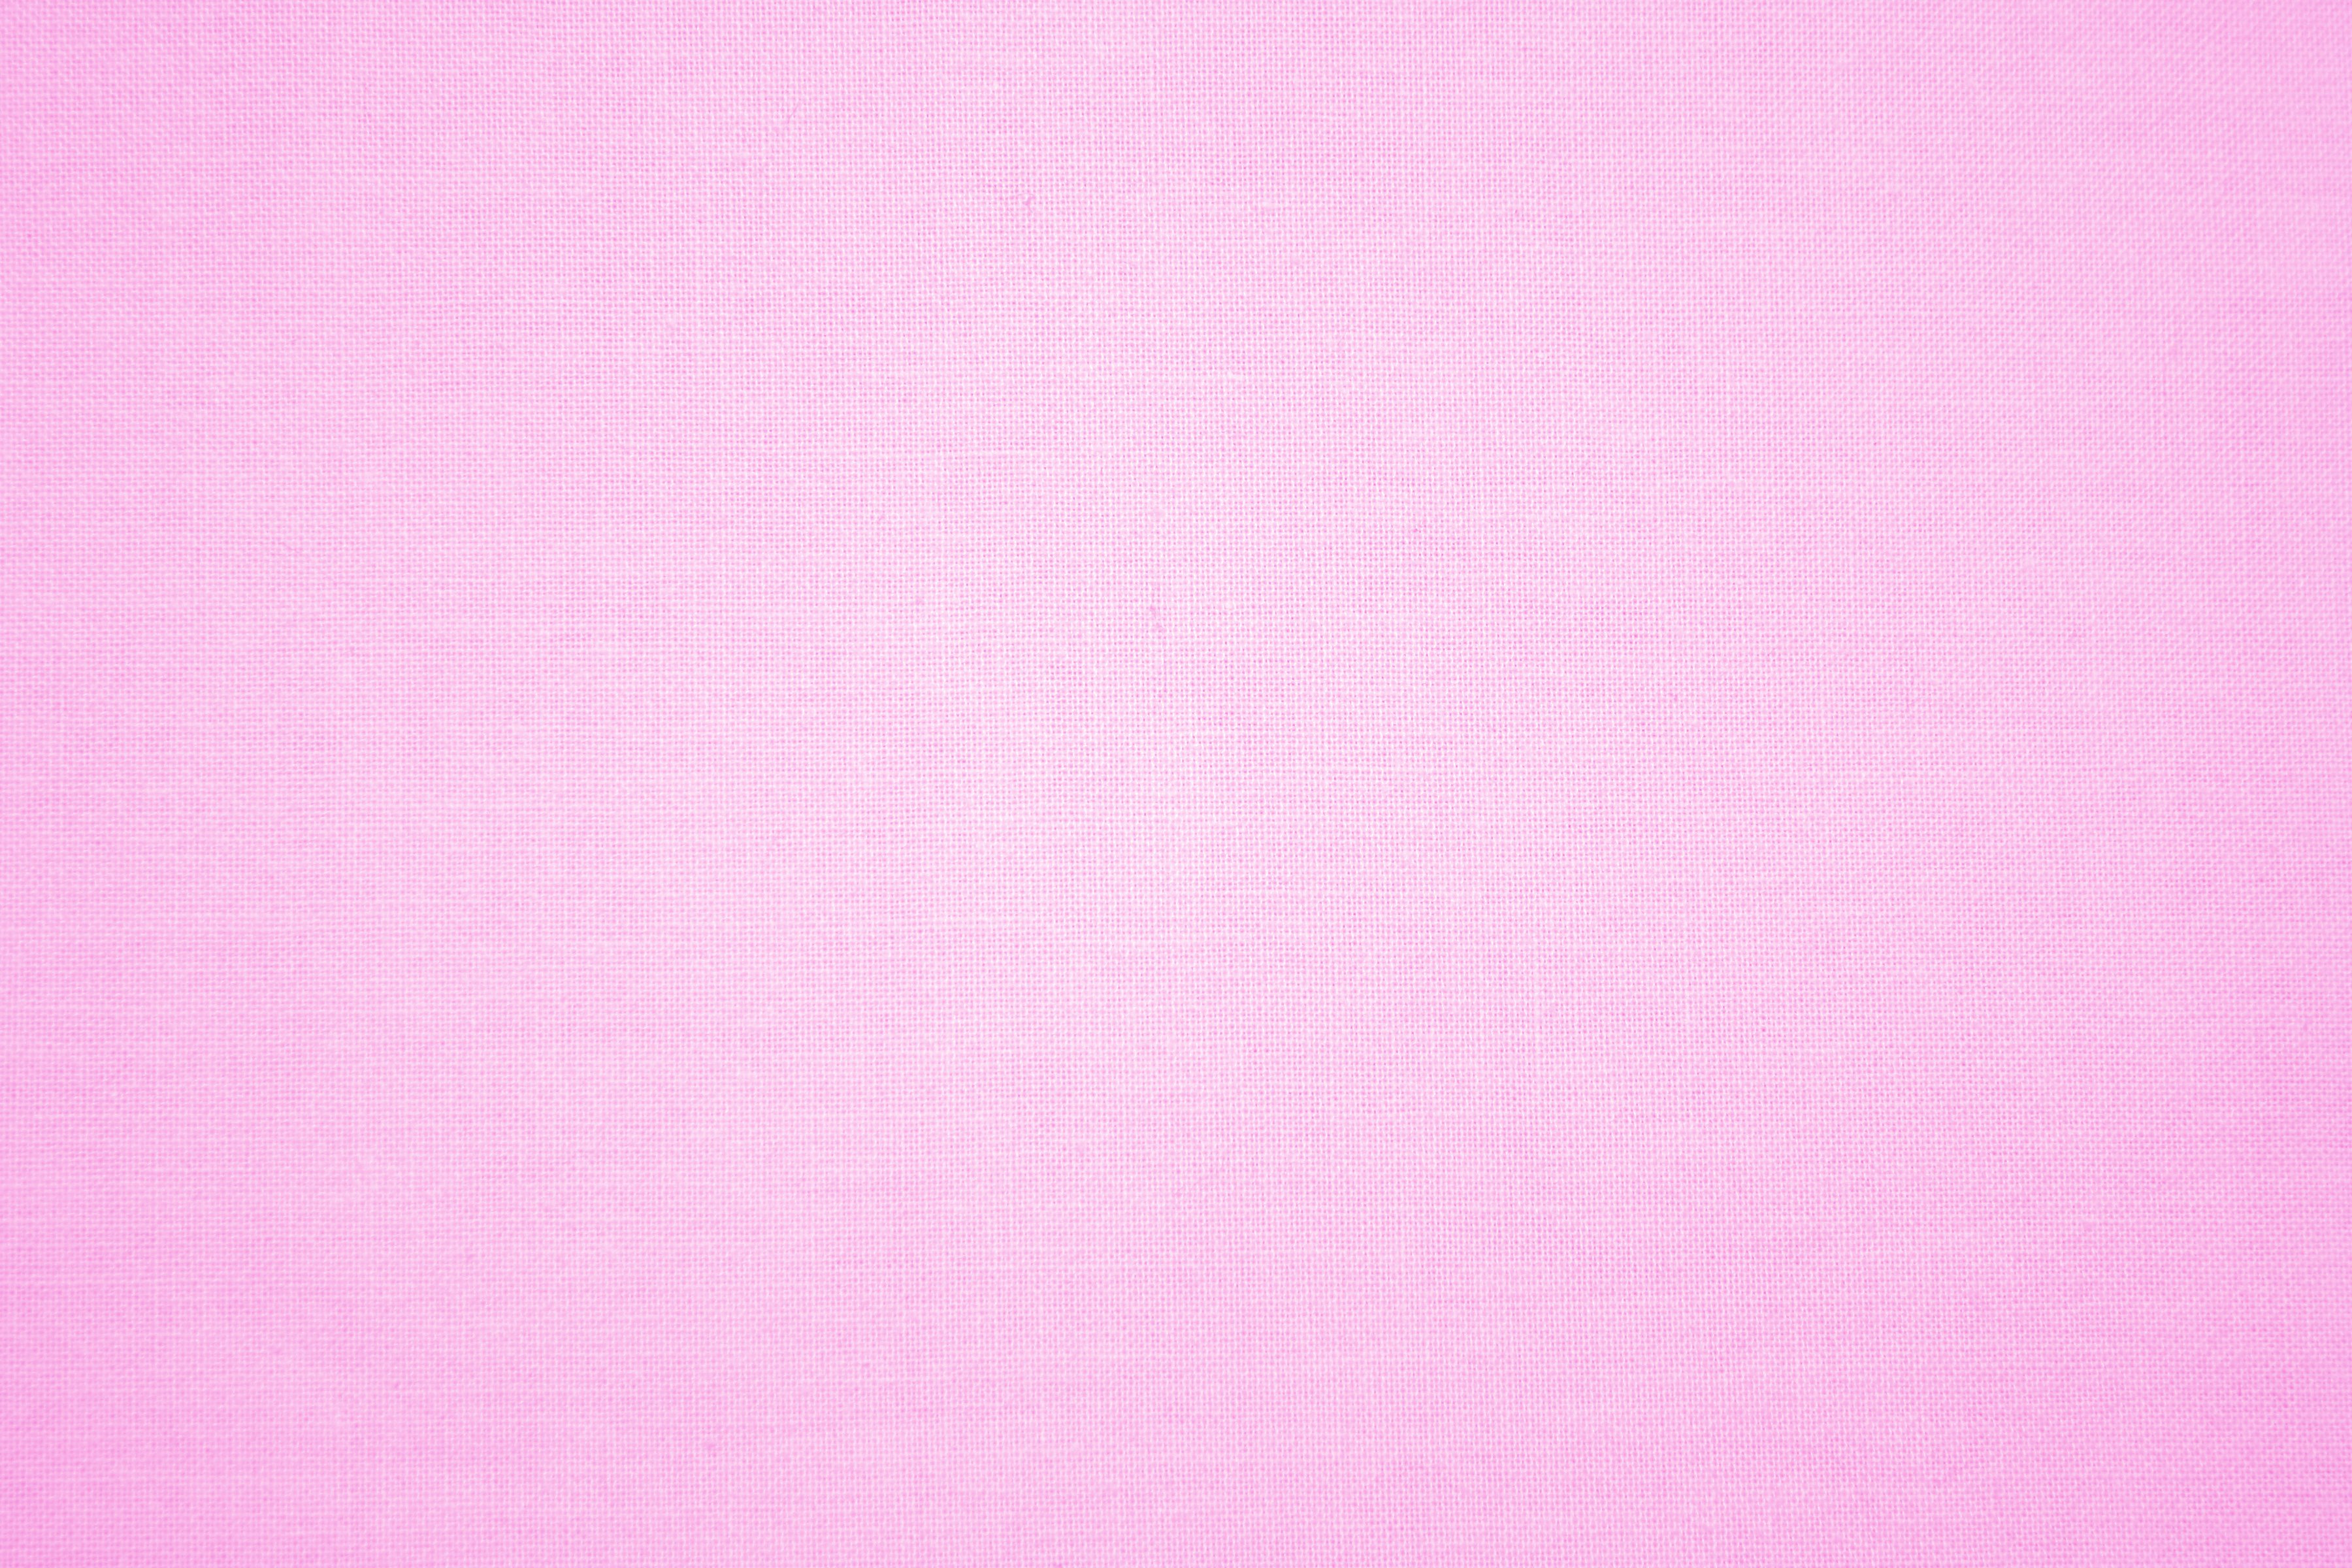 Pink Canvas Fabric Texture Picture Free Photograph